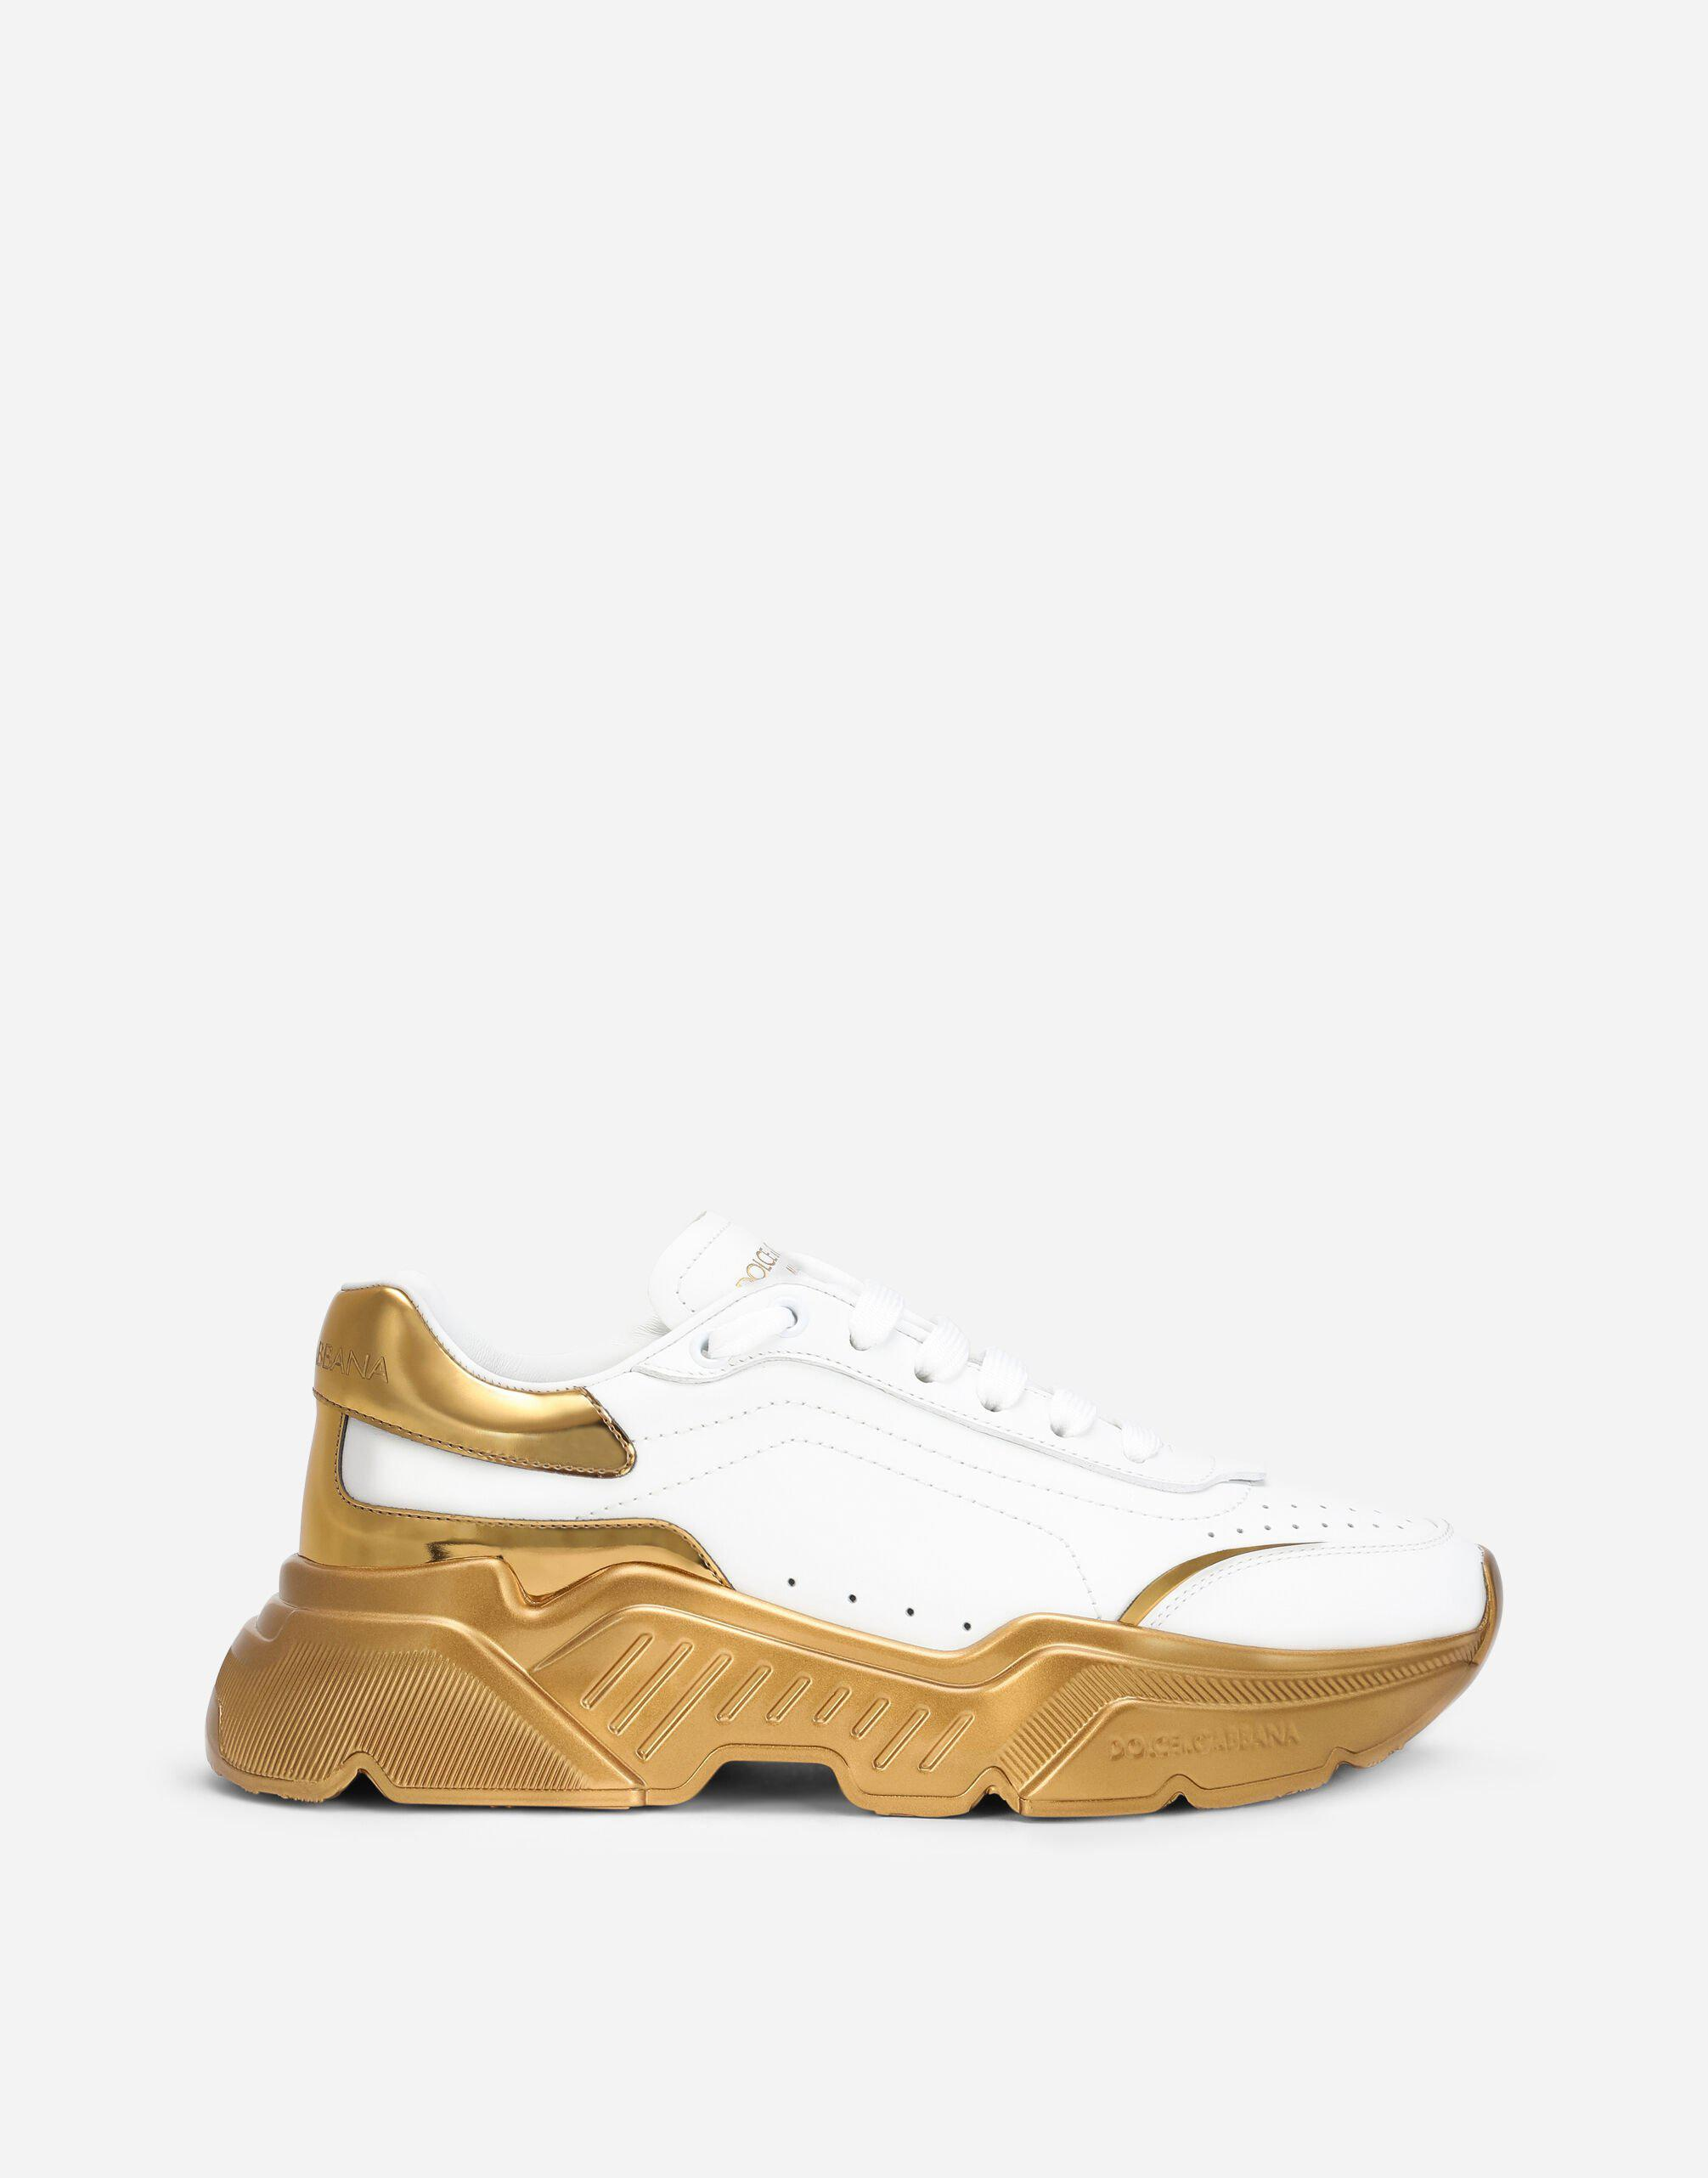 Daymaster sneakers in nappa leather with mirrored bottom